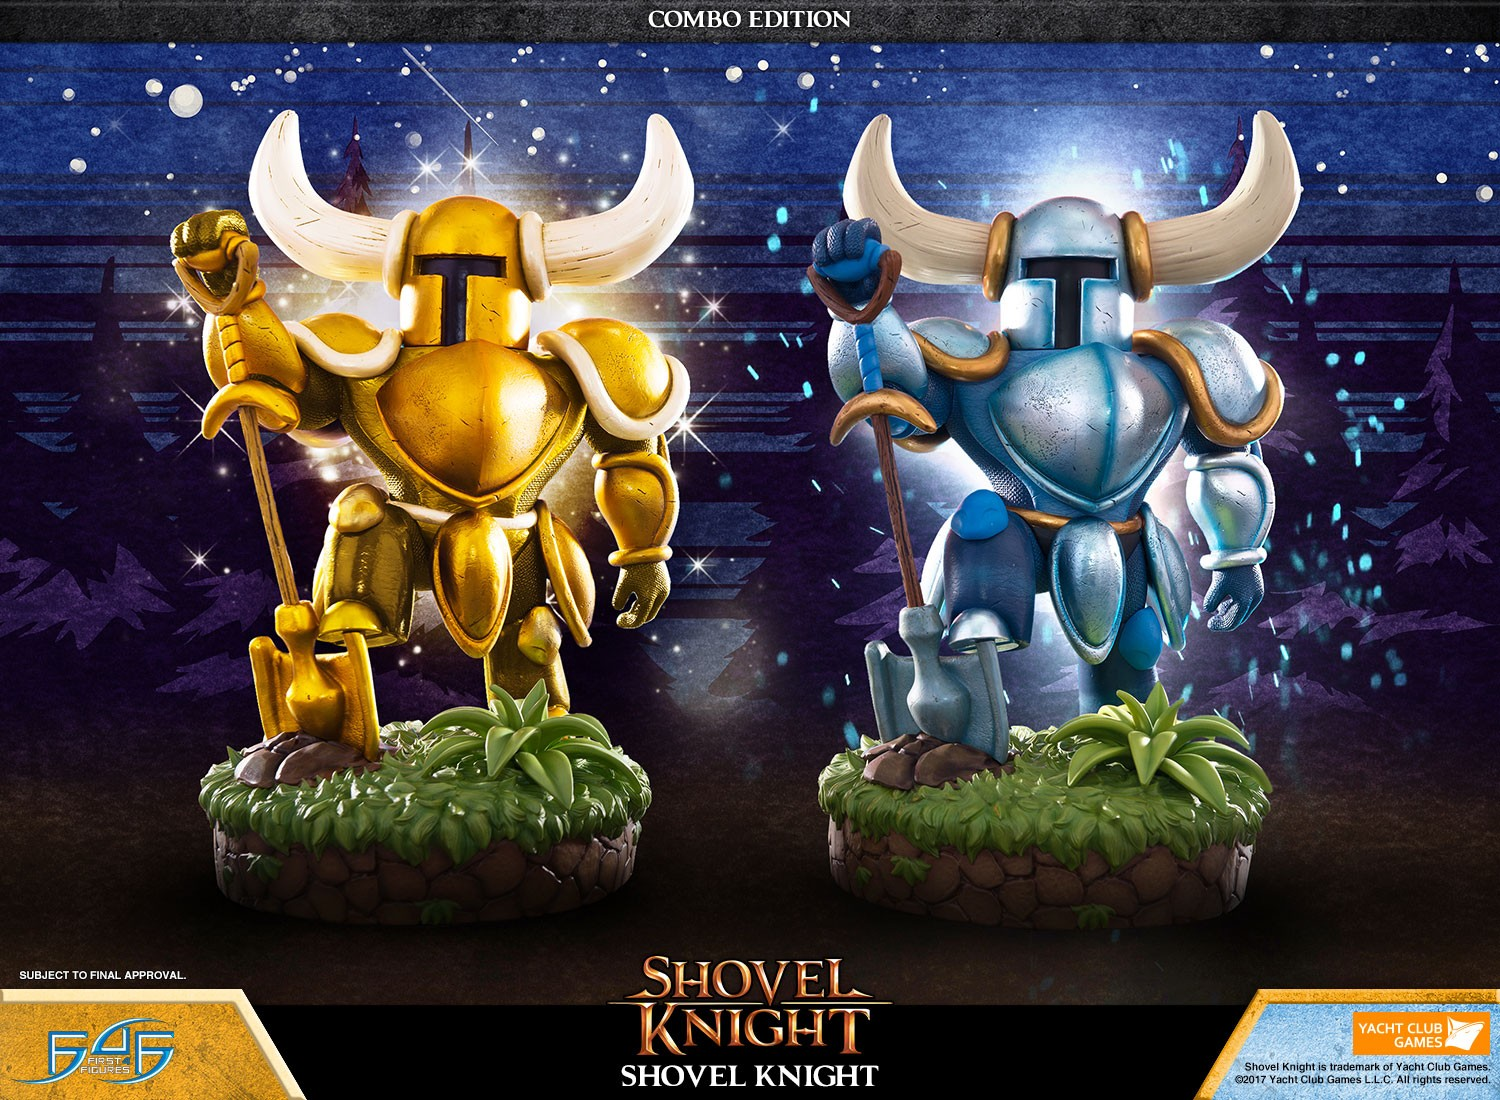 Shovel Knight (Combo Edition)